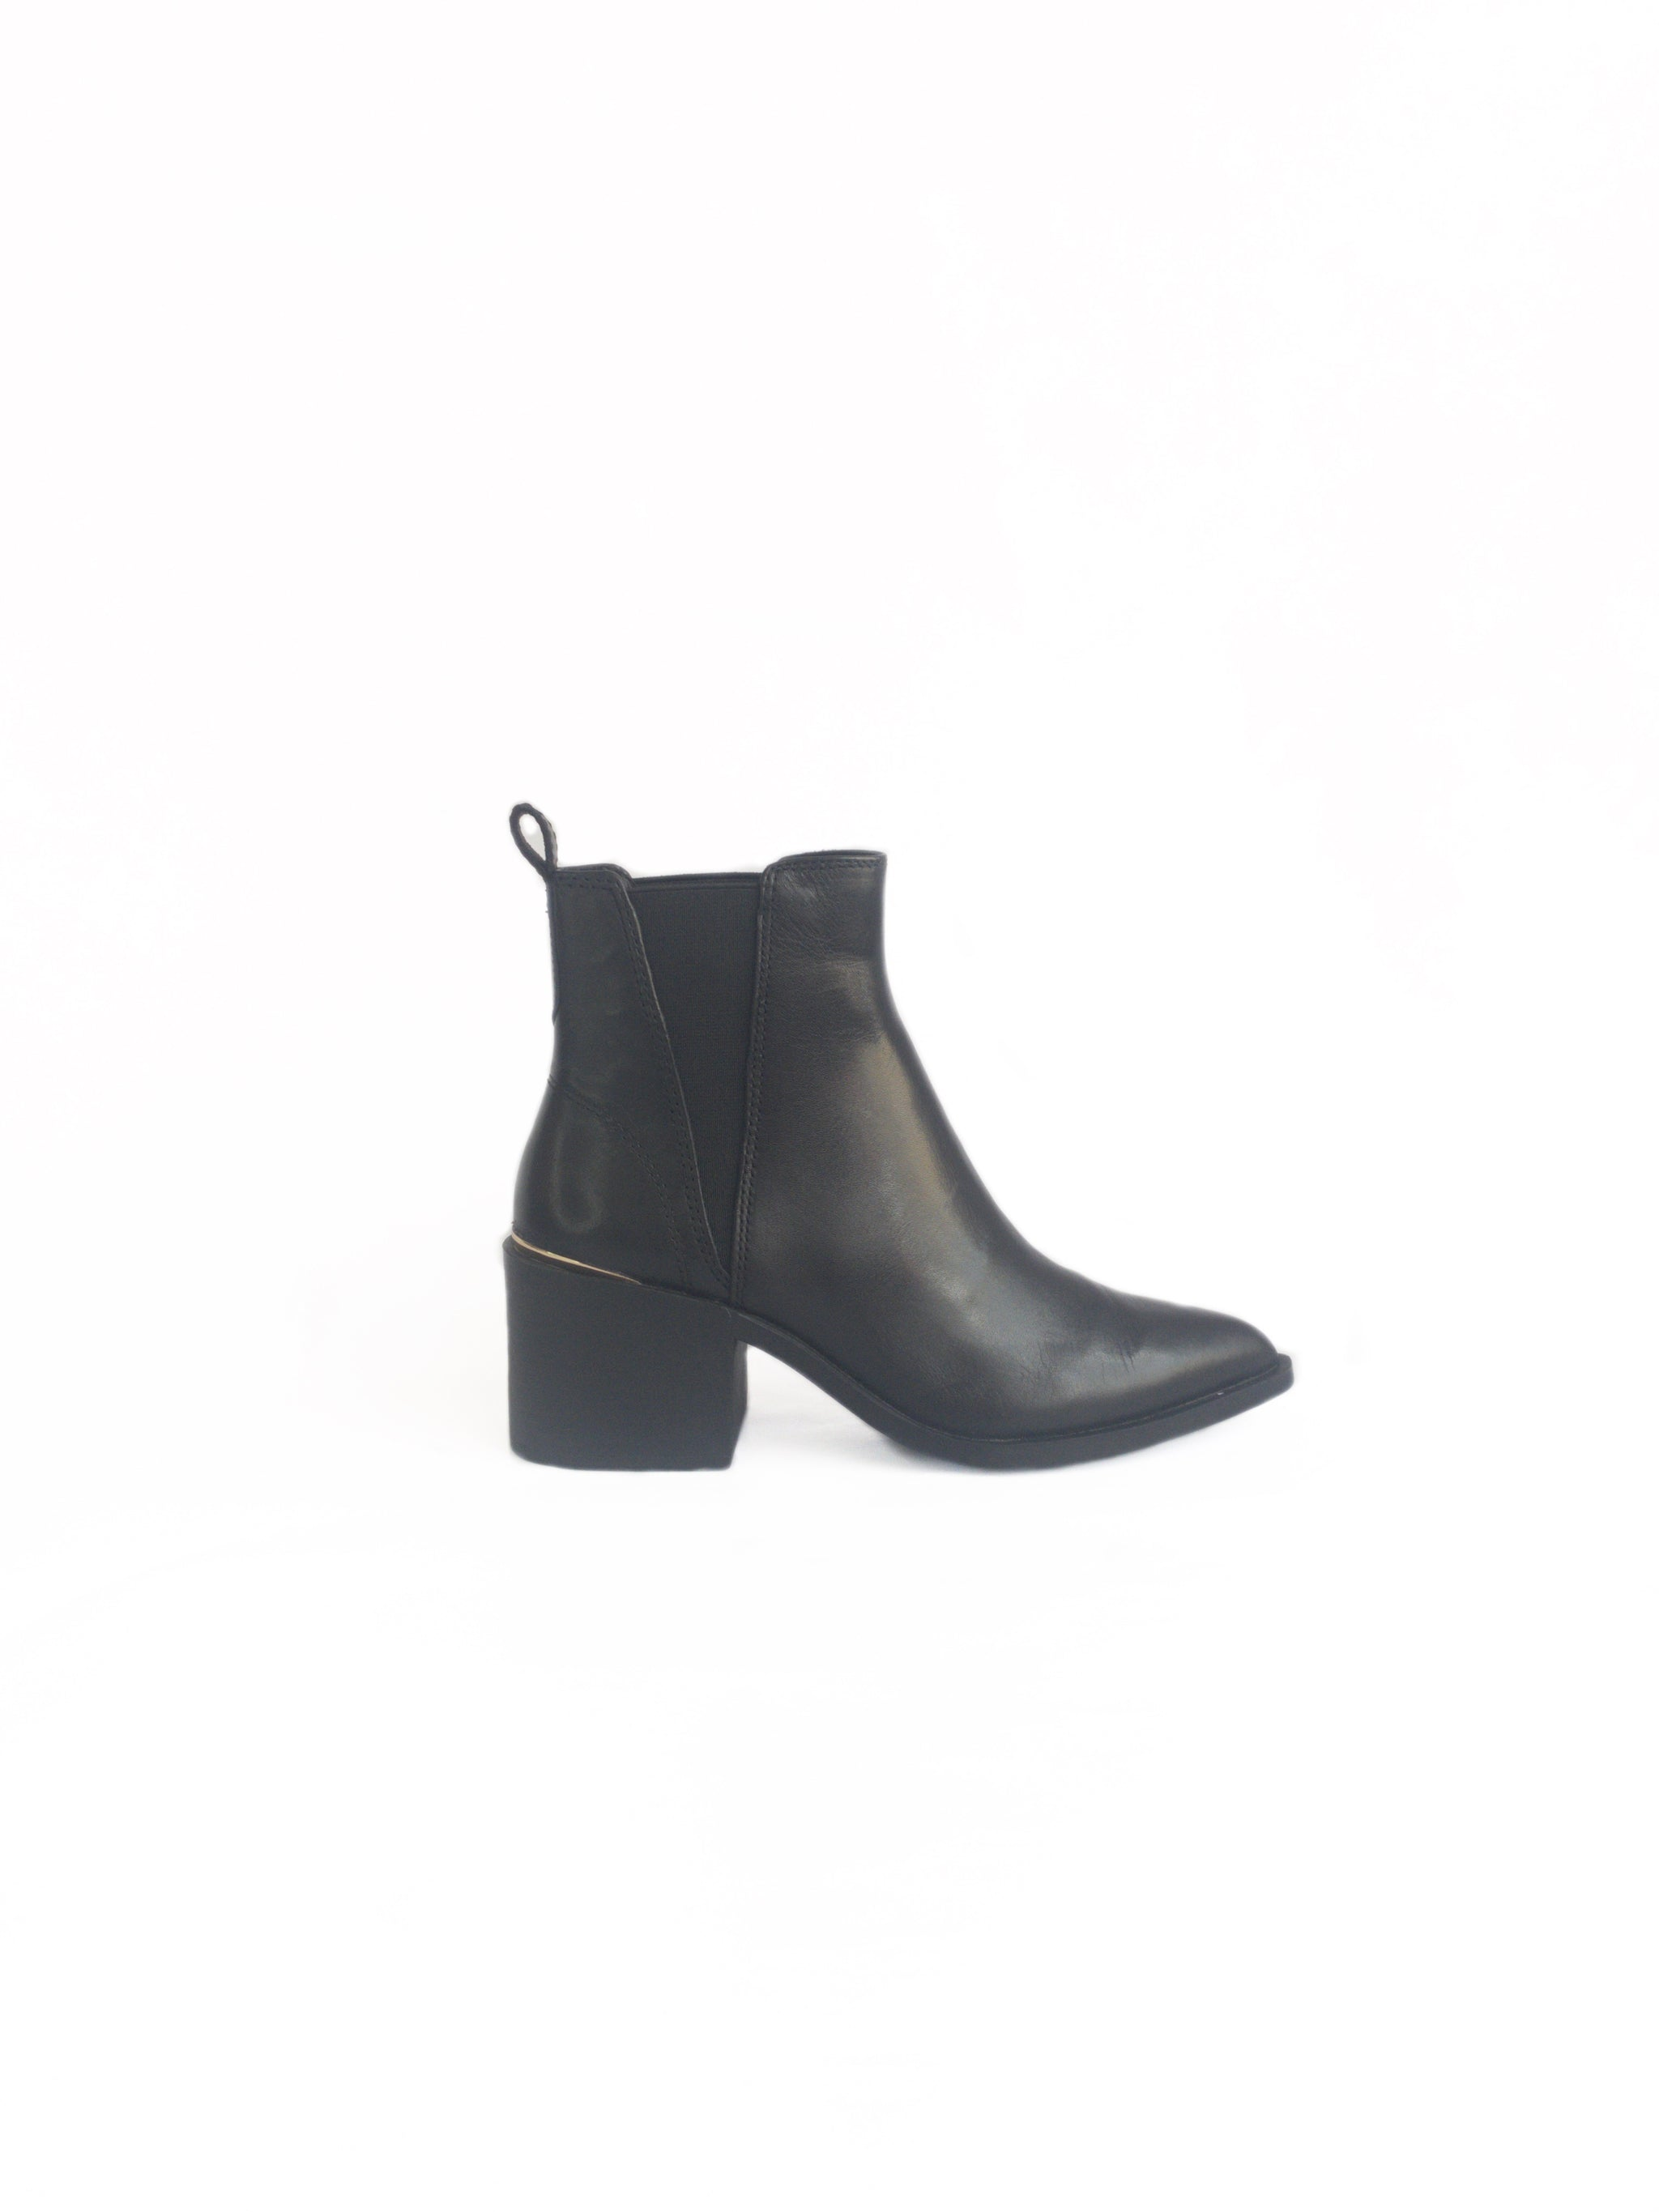 STEVE MADDEN - AUDIENCE-R IN BLACK LEATHER